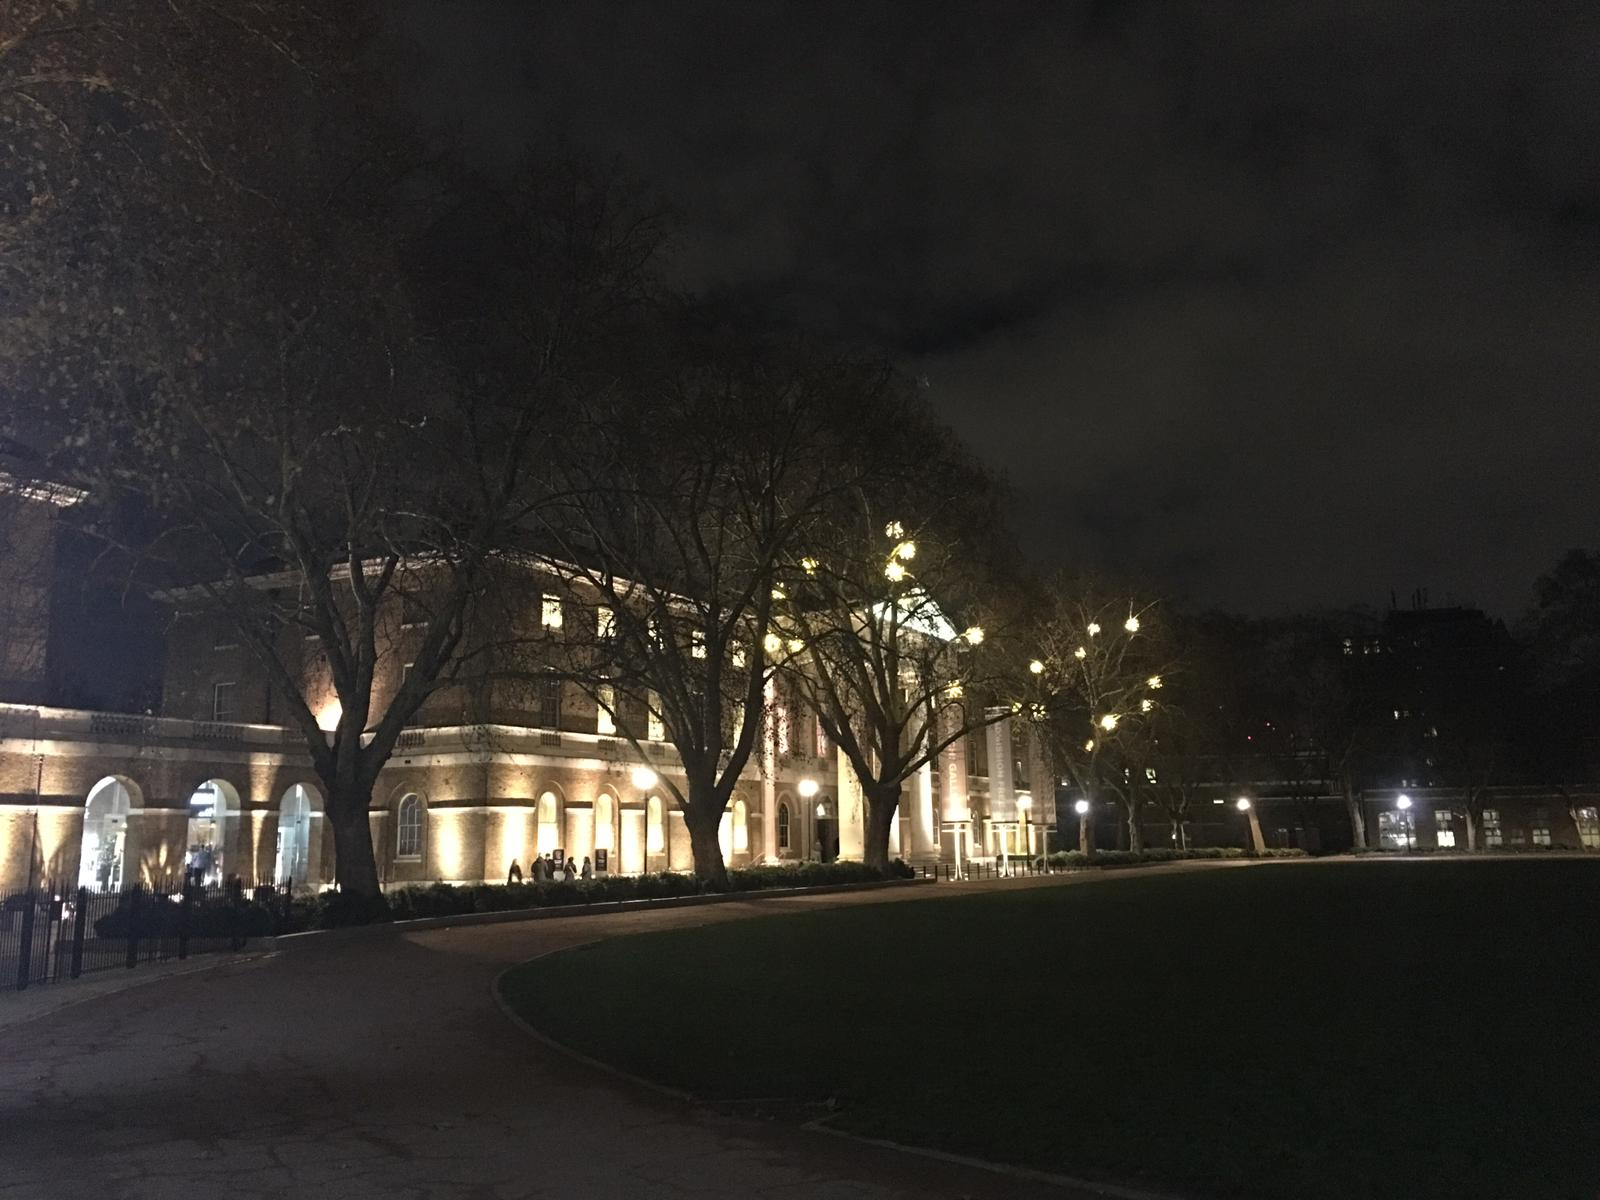 Saatchi Gallery by night